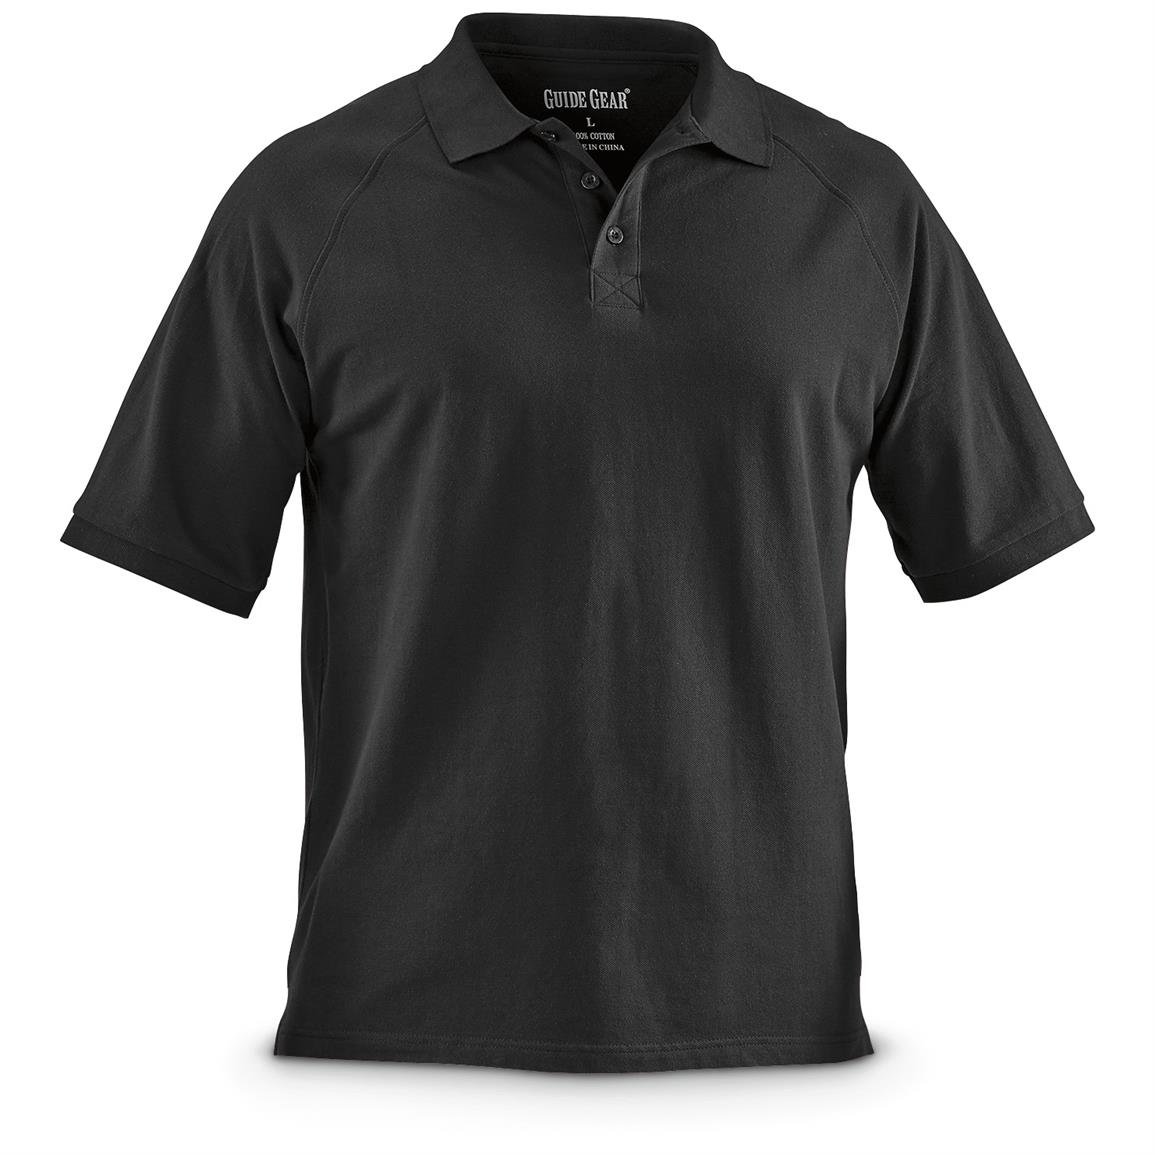 Guide Gear Men's Cotton Polo Shirt, Black